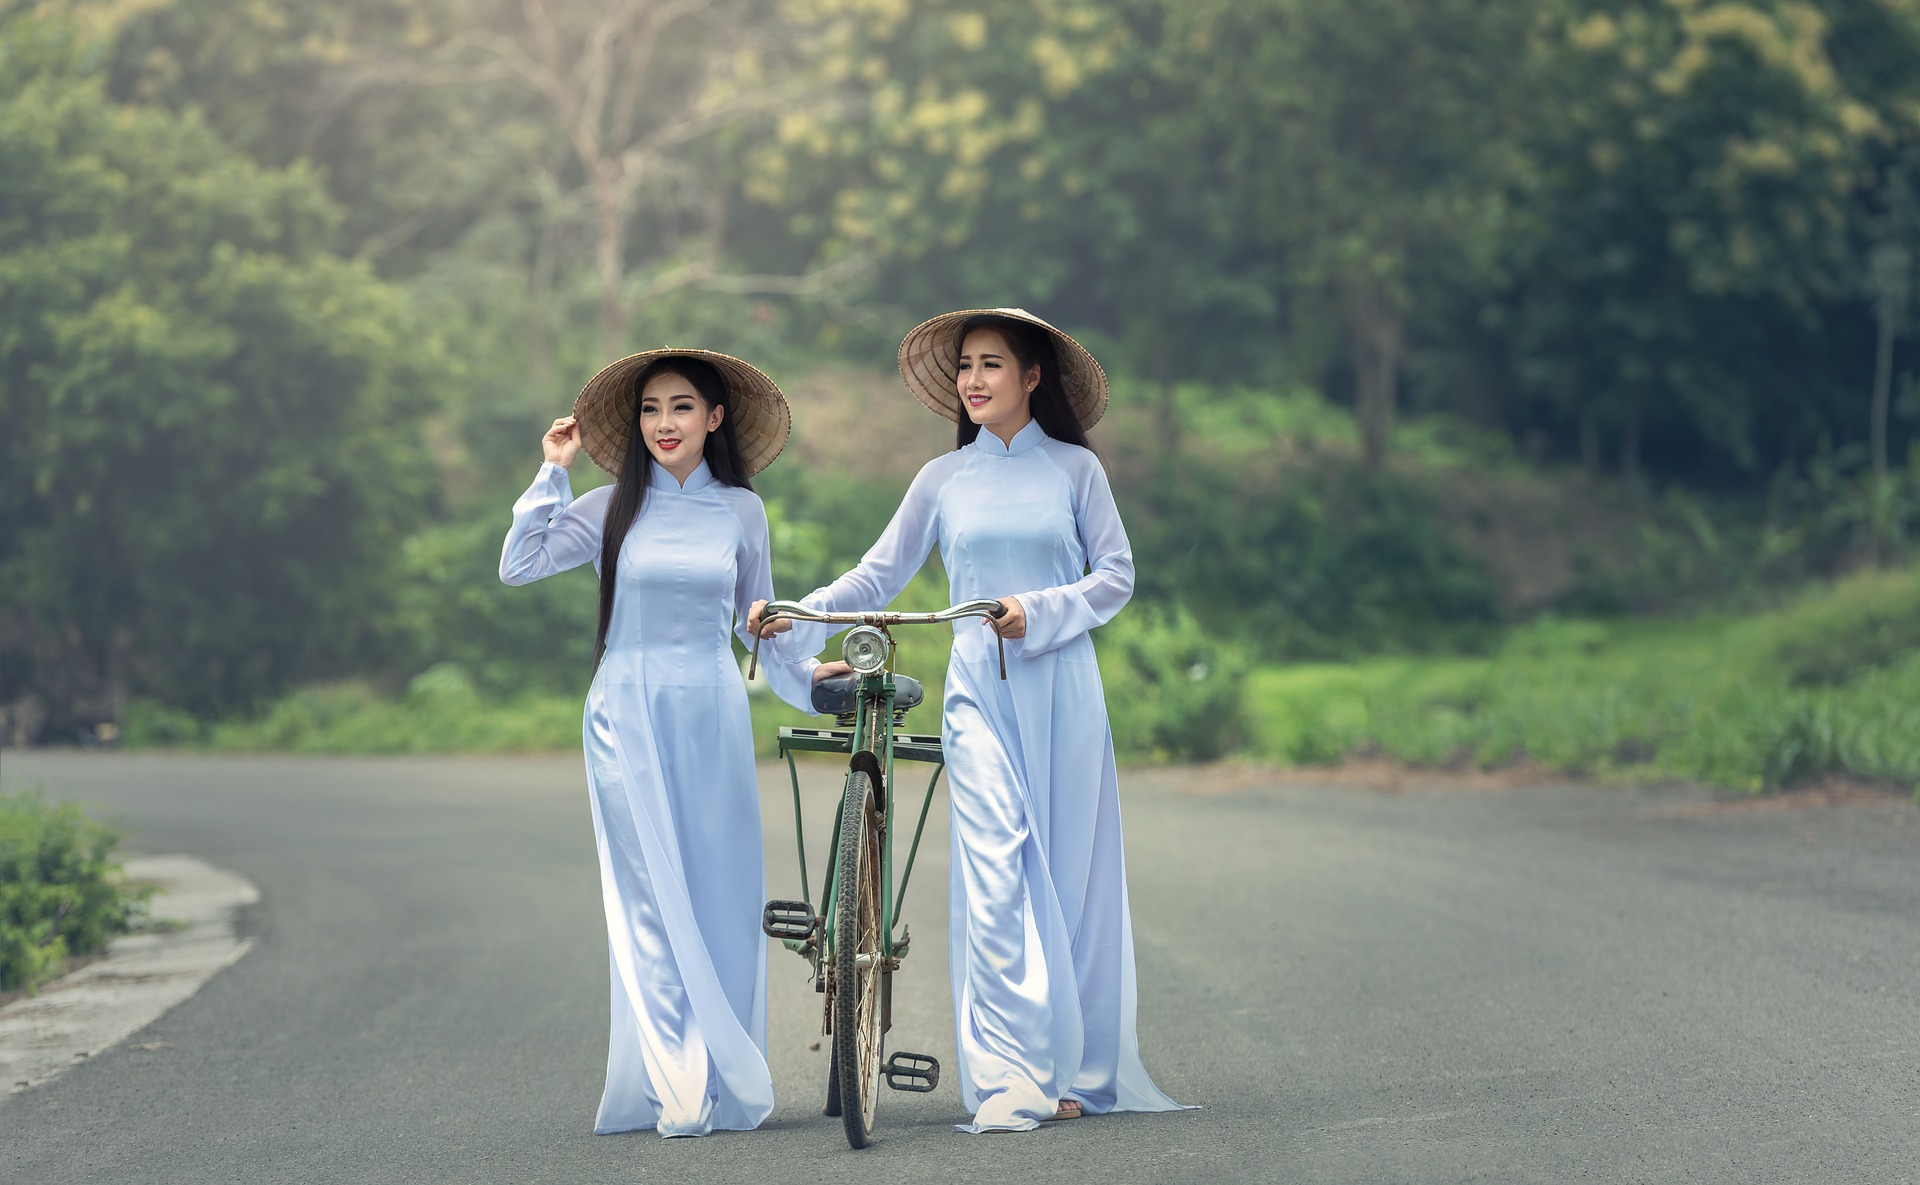 Ladies with the cycle photo